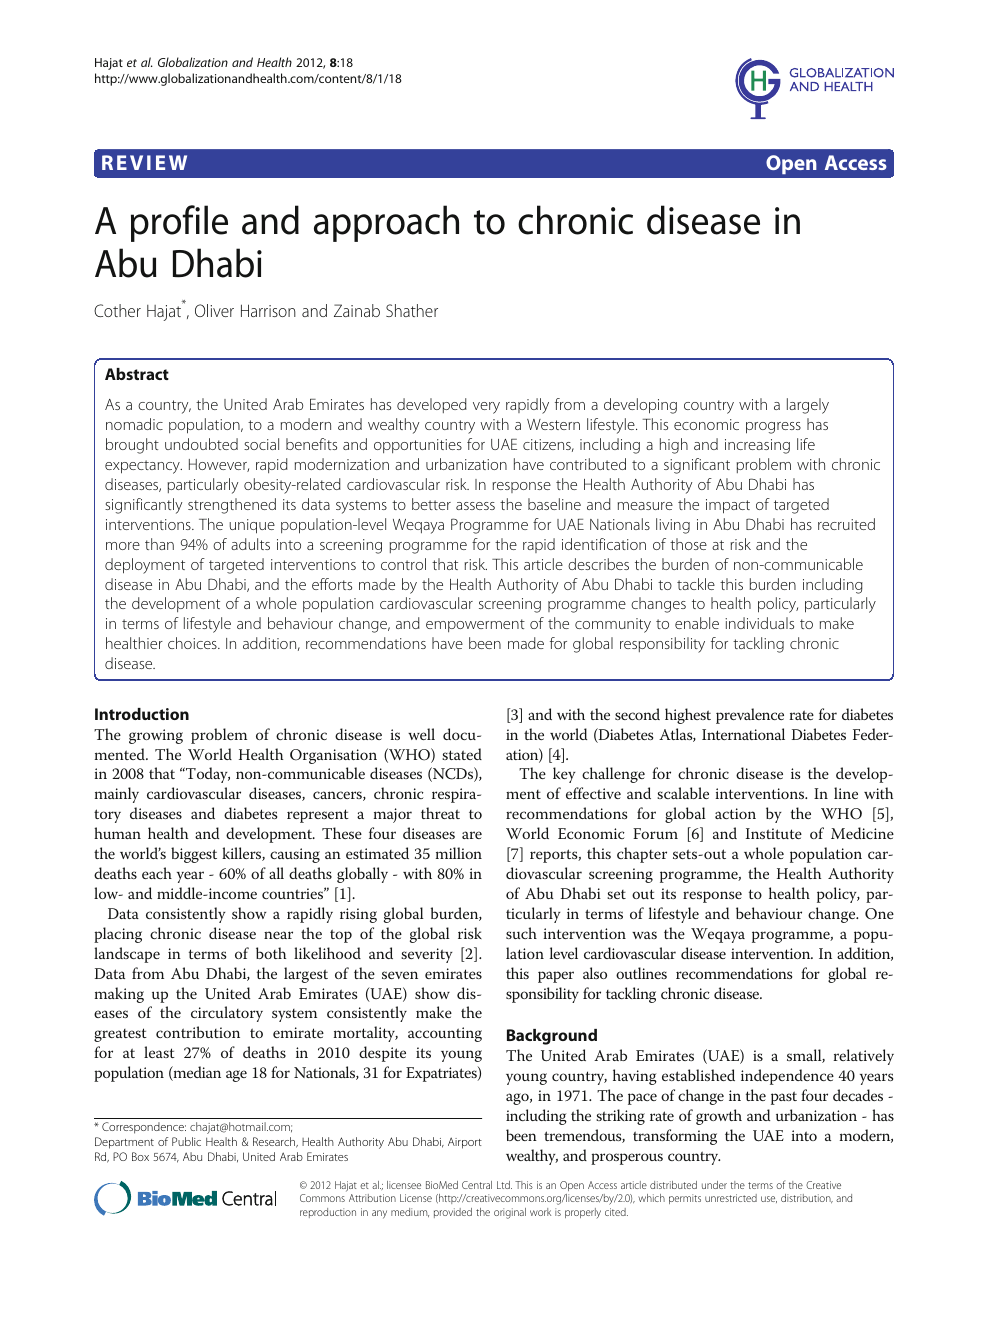 A profile and approach to chronic disease in Abu Dhabi – topic of